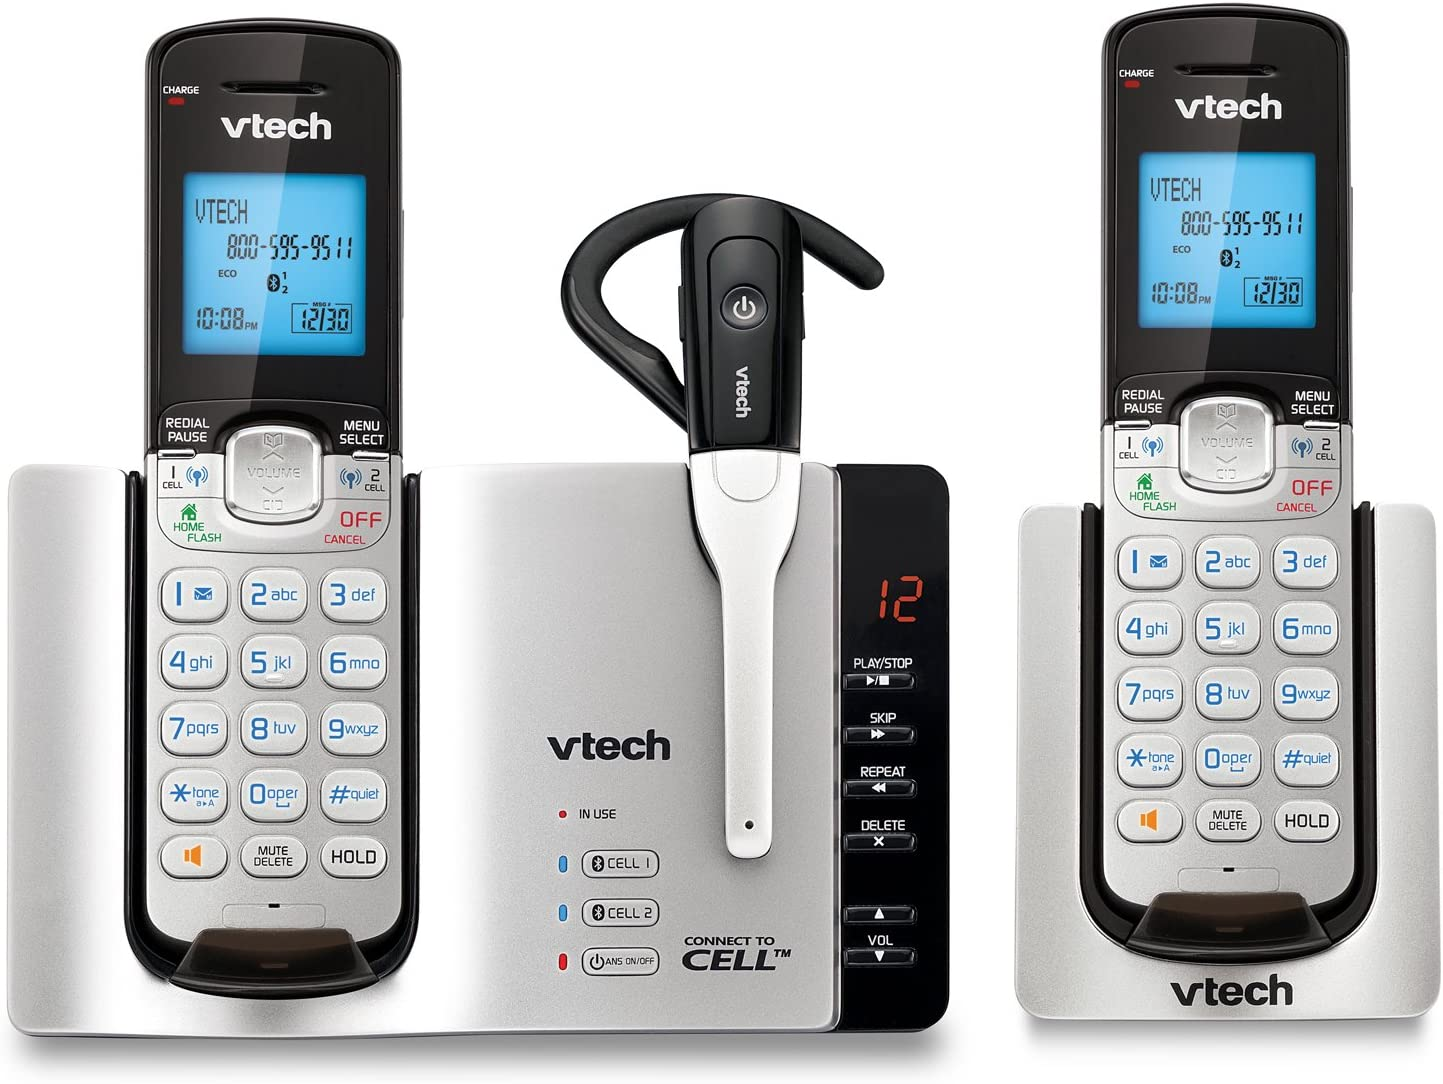 VTech DS6671-3 DECT 6.0 Expandable Cordless Phone with Bluetooth Connect Answering System, Silver/Black with 2 Handsets and 1 Cordless Headset